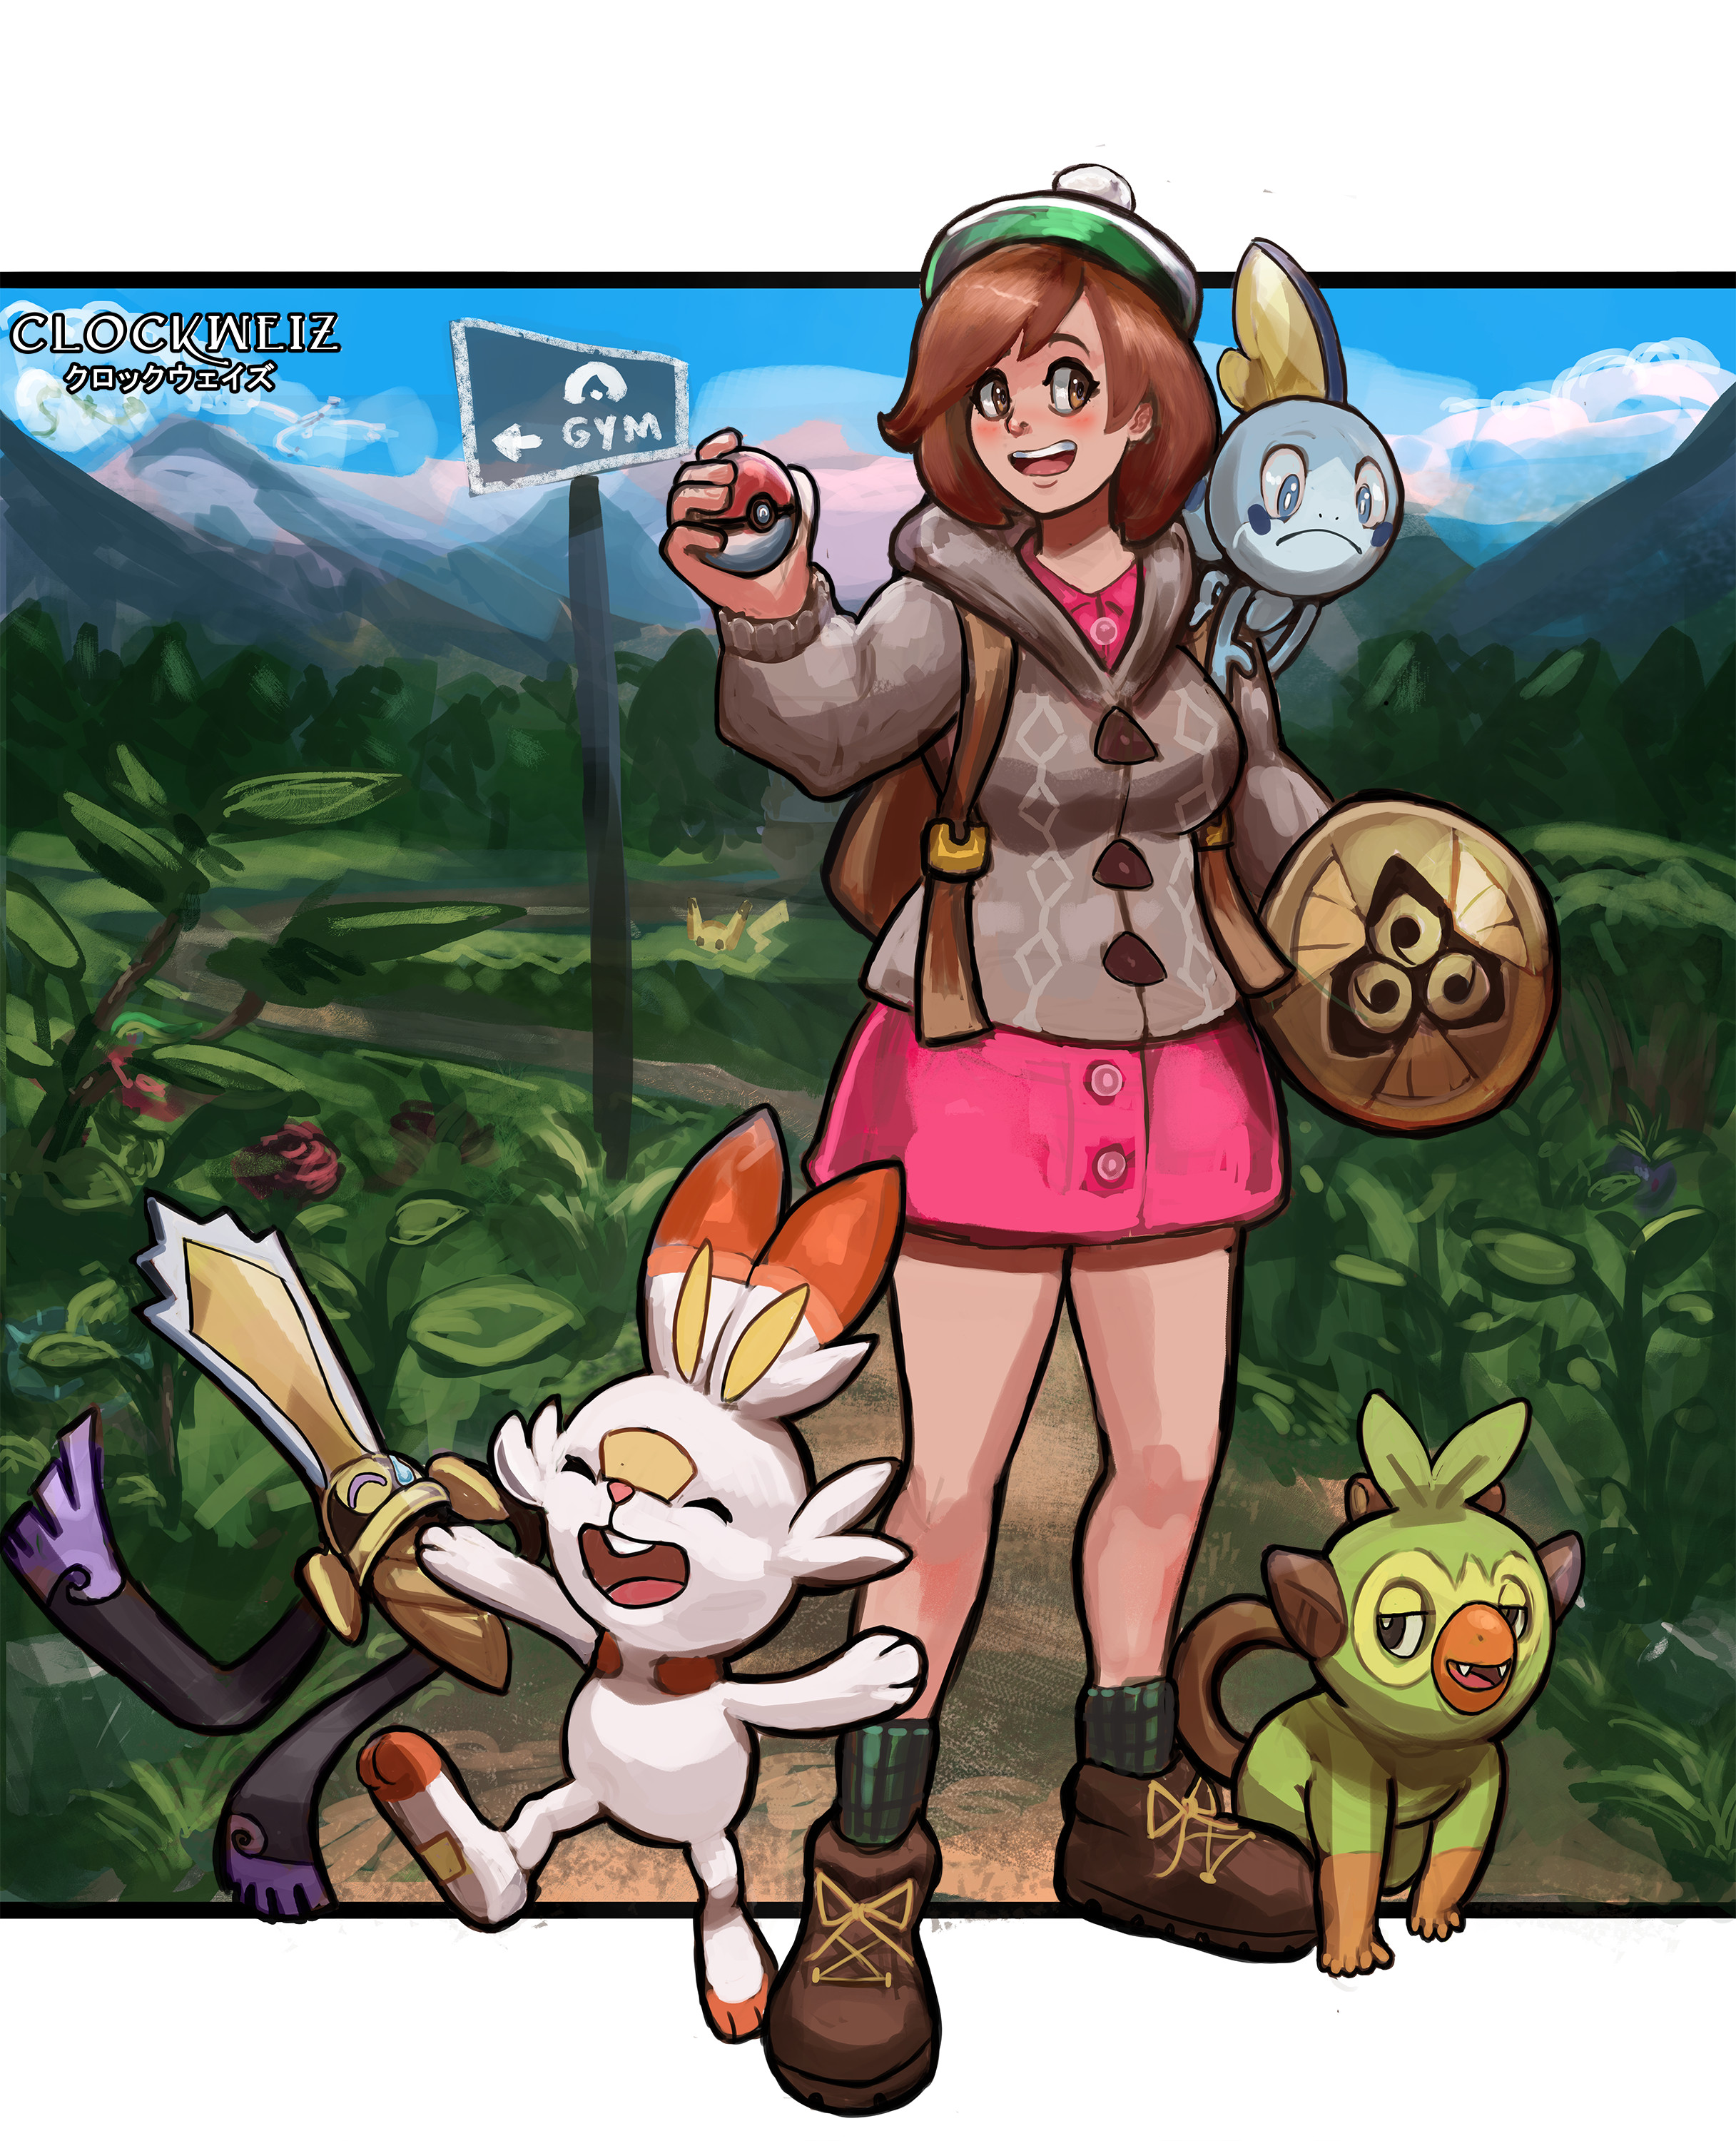 Rembrandt Van Leeuwen Pokemon Sword And Shield Grookey Sobble Scorbunny Sobble is said to be timid monster who tends to hide a lot — so pokémon fans feel defensive of the little guy, often share all sharing options for: rembrandt van leeuwen pokemon sword